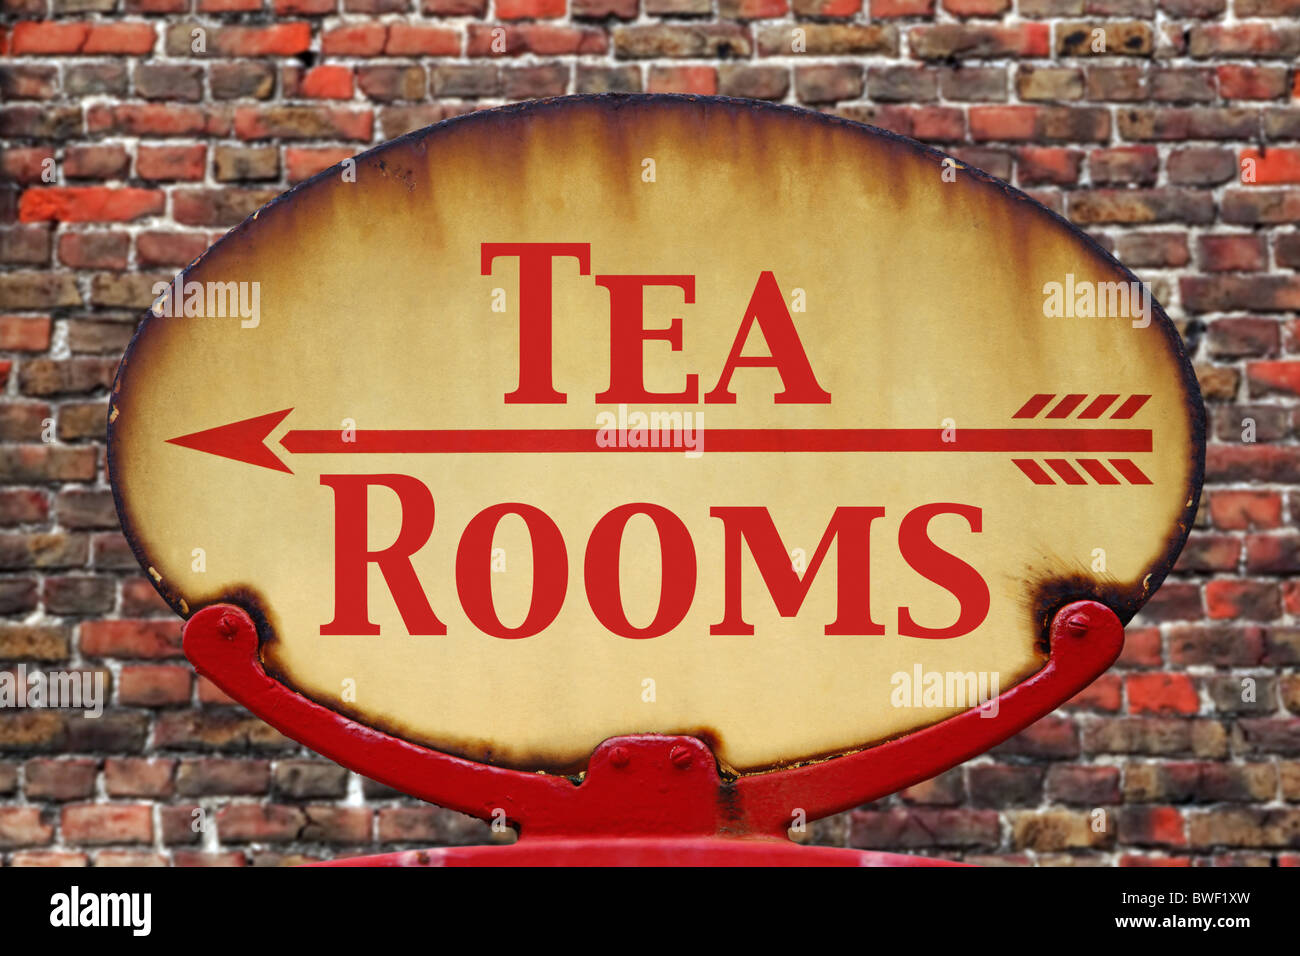 A rusty old retro arrow sign with the text Tea rooms - Stock Image